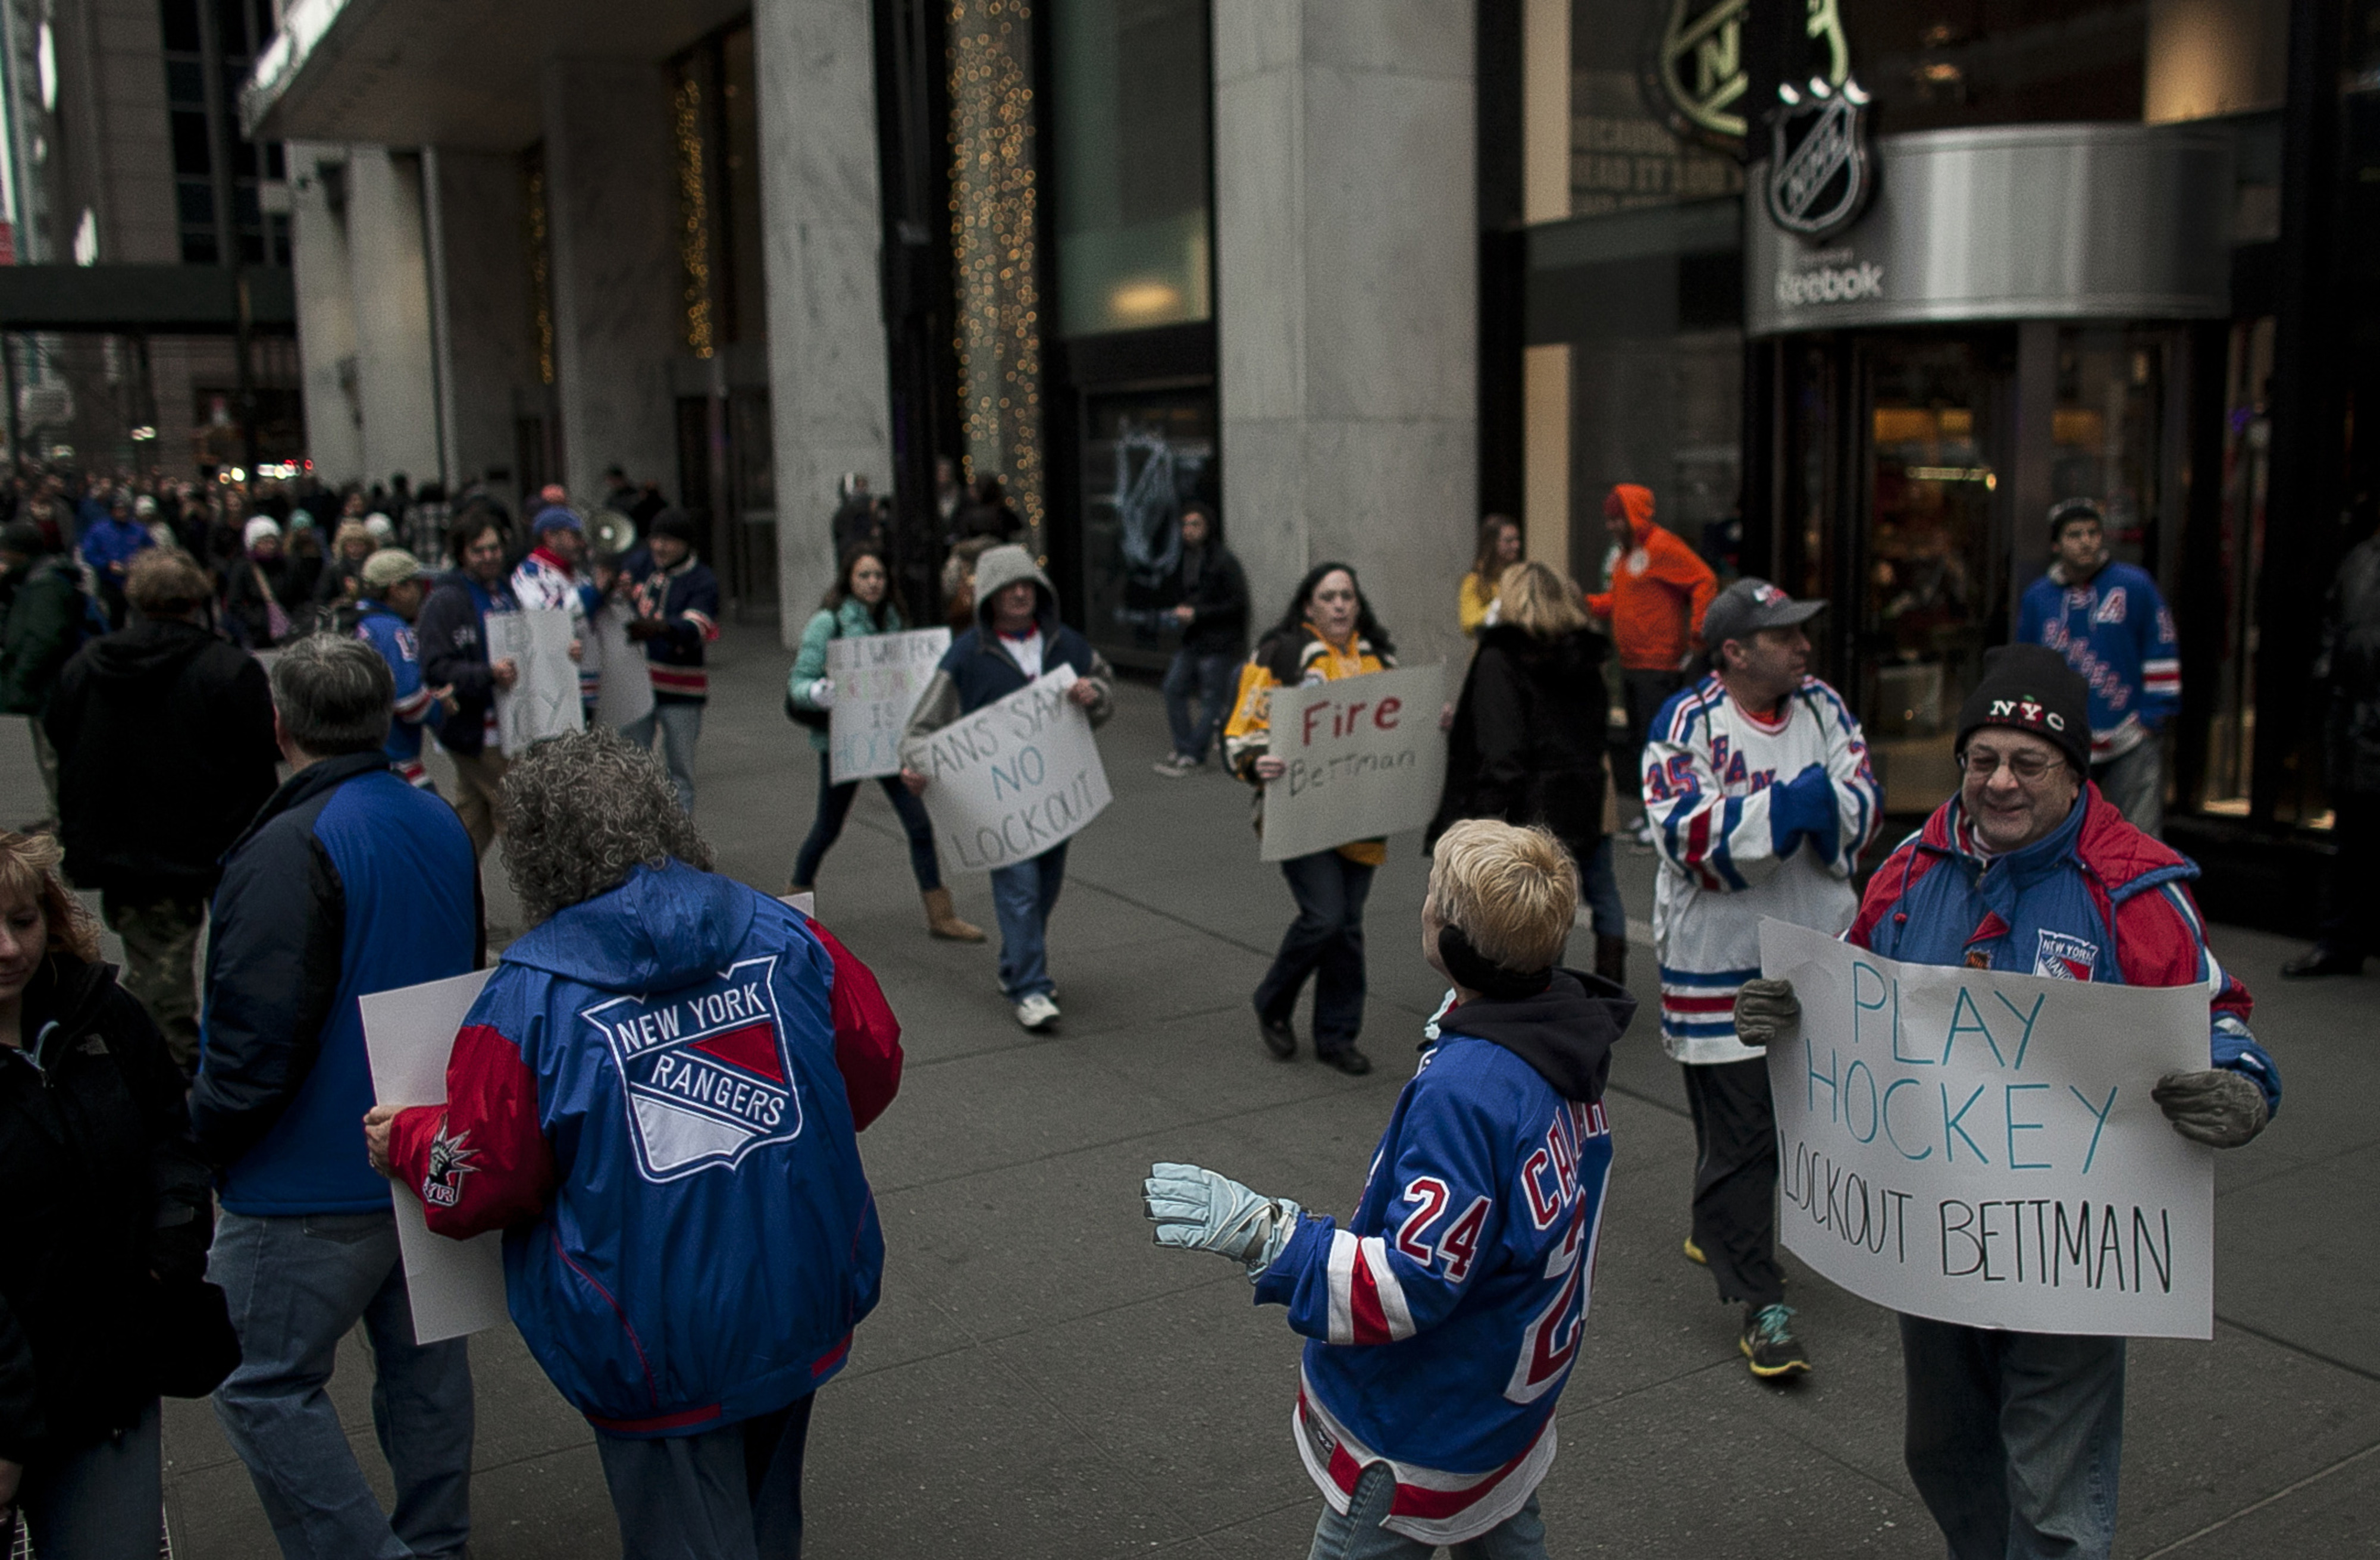 Rangers fans, lacking guidance, wander aimlessly around New York.